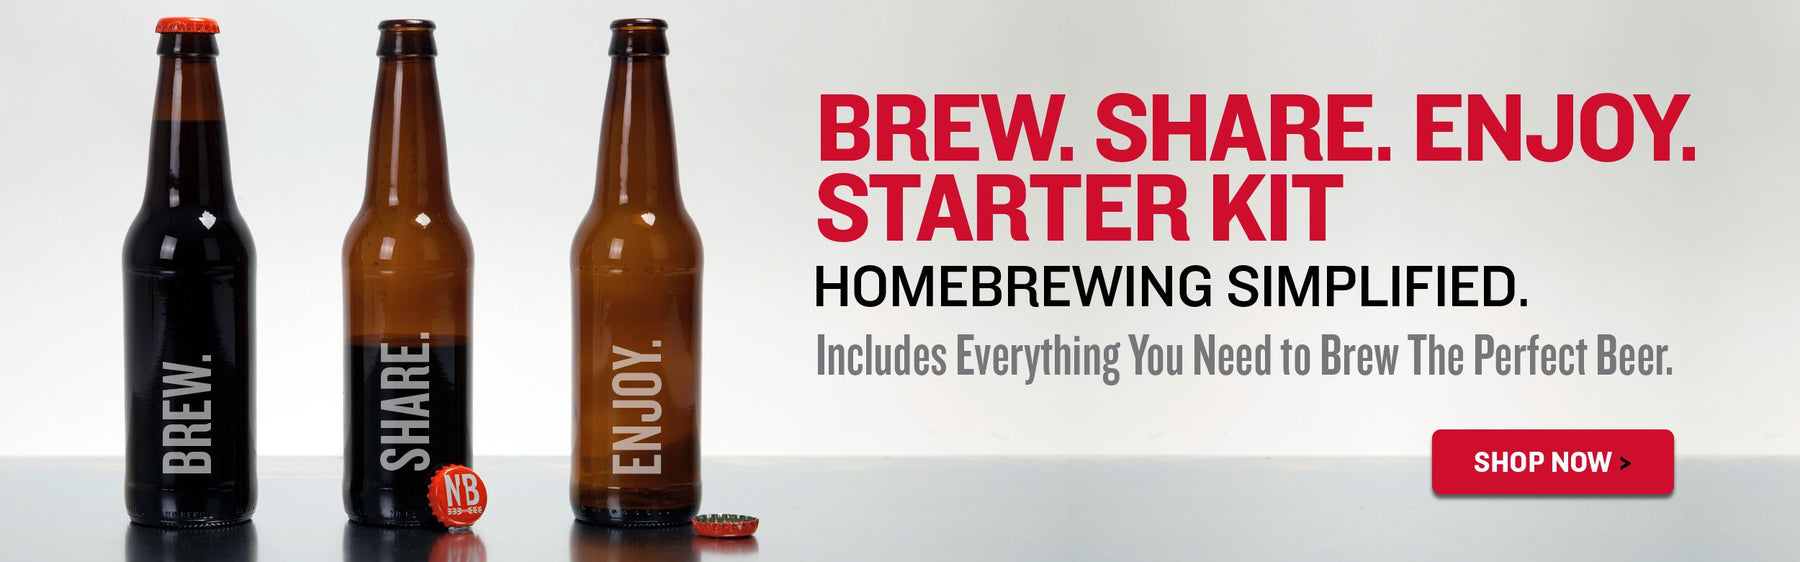 Brew. Share. Enjoy® Capping Bottles